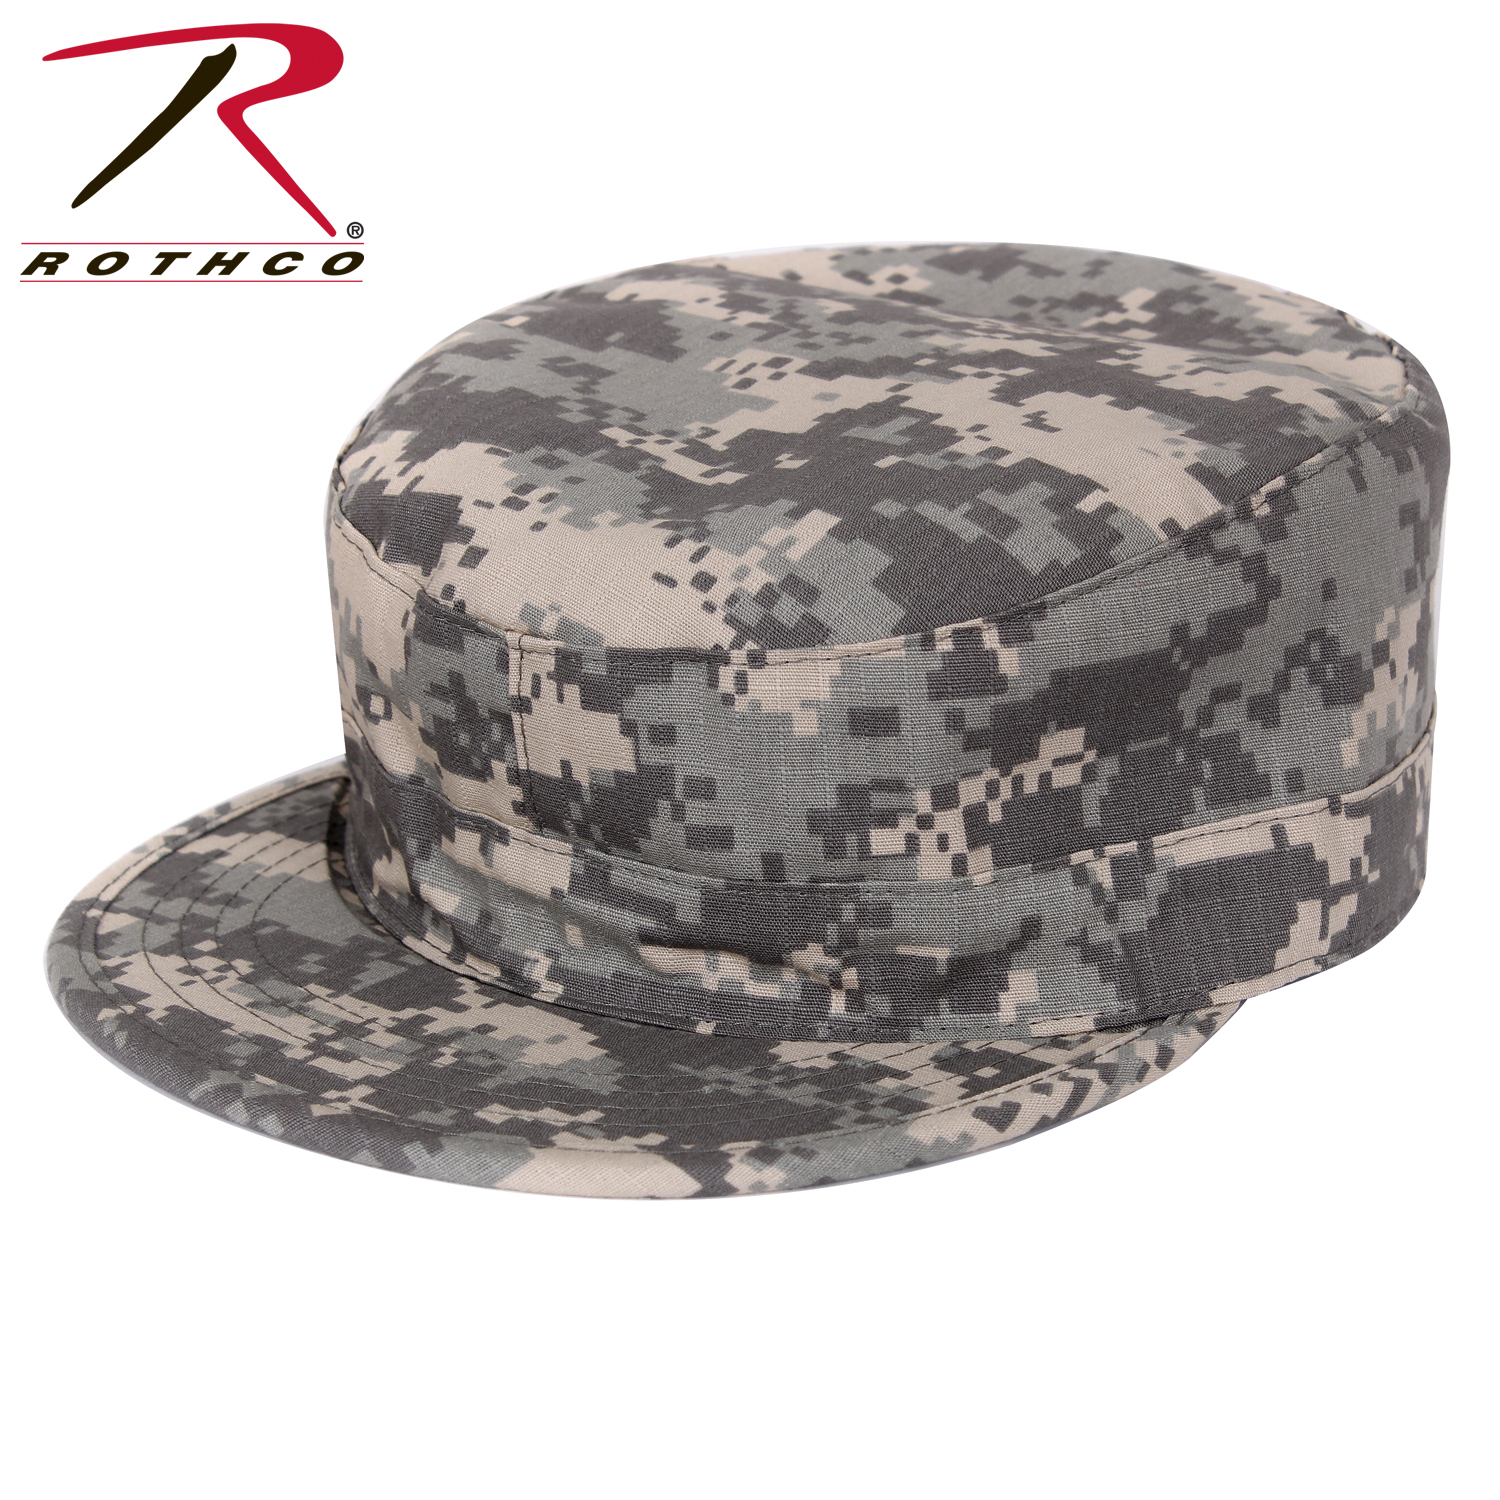 Rothco Gov t Spec 2 Ply Poly Cotton Rip-Stop Army Ranger Fatigue Cap 97ed9287bbf